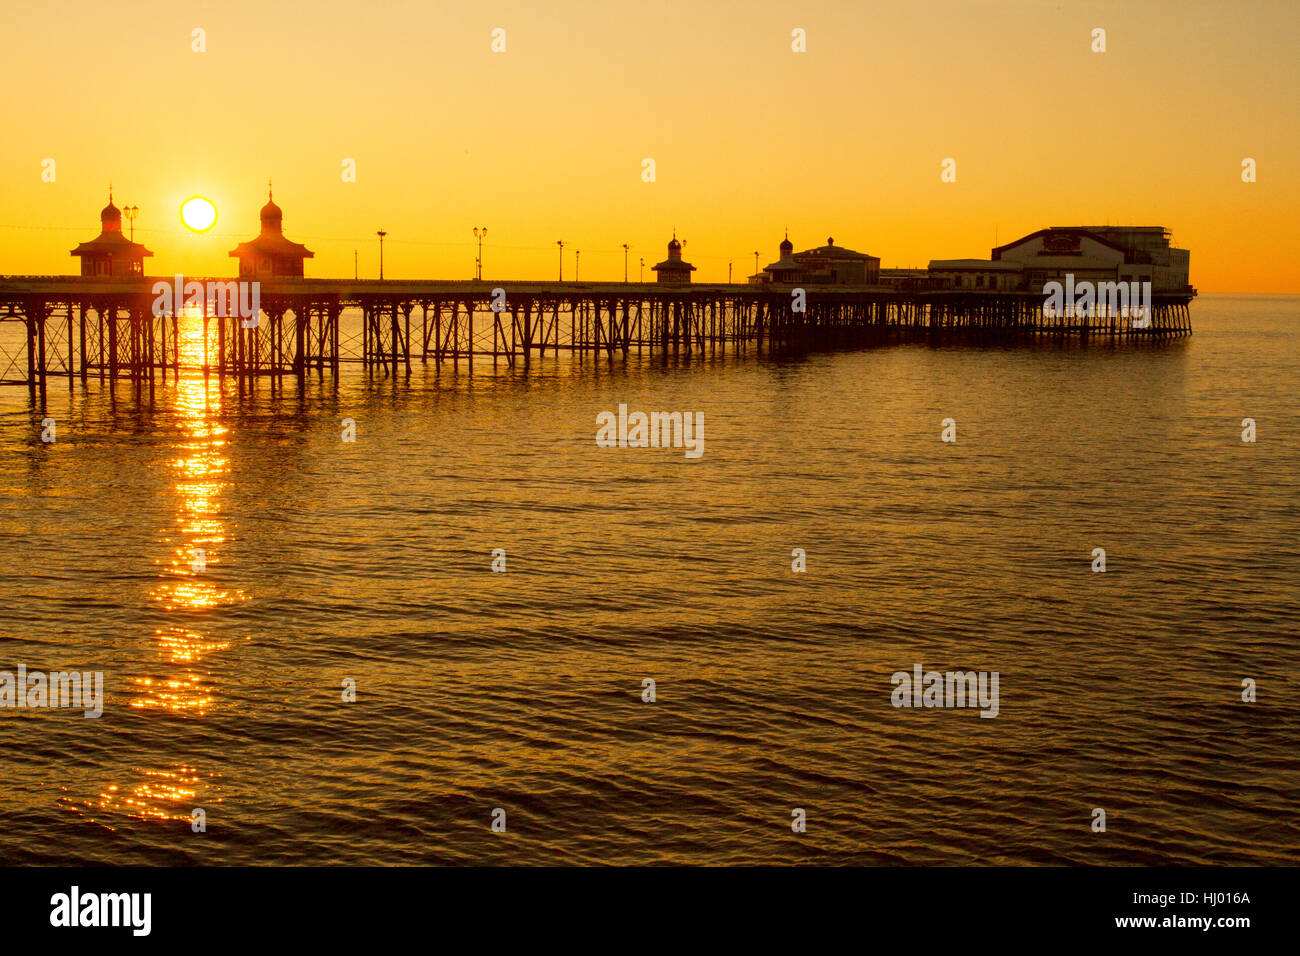 High Tide at Blackpool's North Pier, a Victorian structure and landmark, at sunset  Lancashire, UK Stock Photo